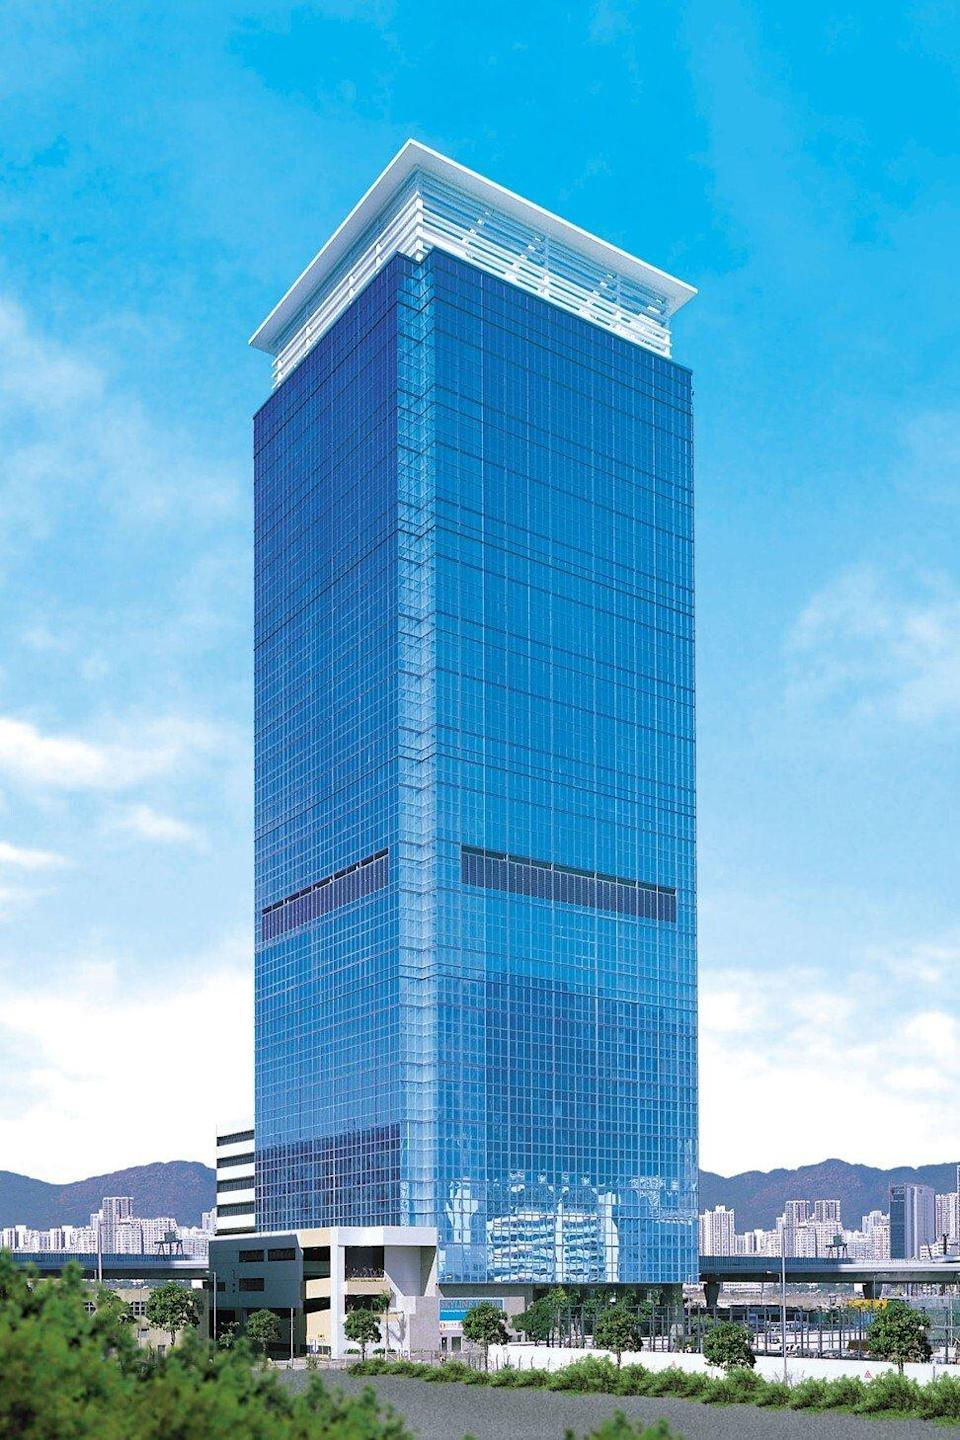 The Government Property Agency has leased 100,000 sq ft of office space at Skyline Tower to accommodate the back up offices of a few government departments. Photo: SCMP